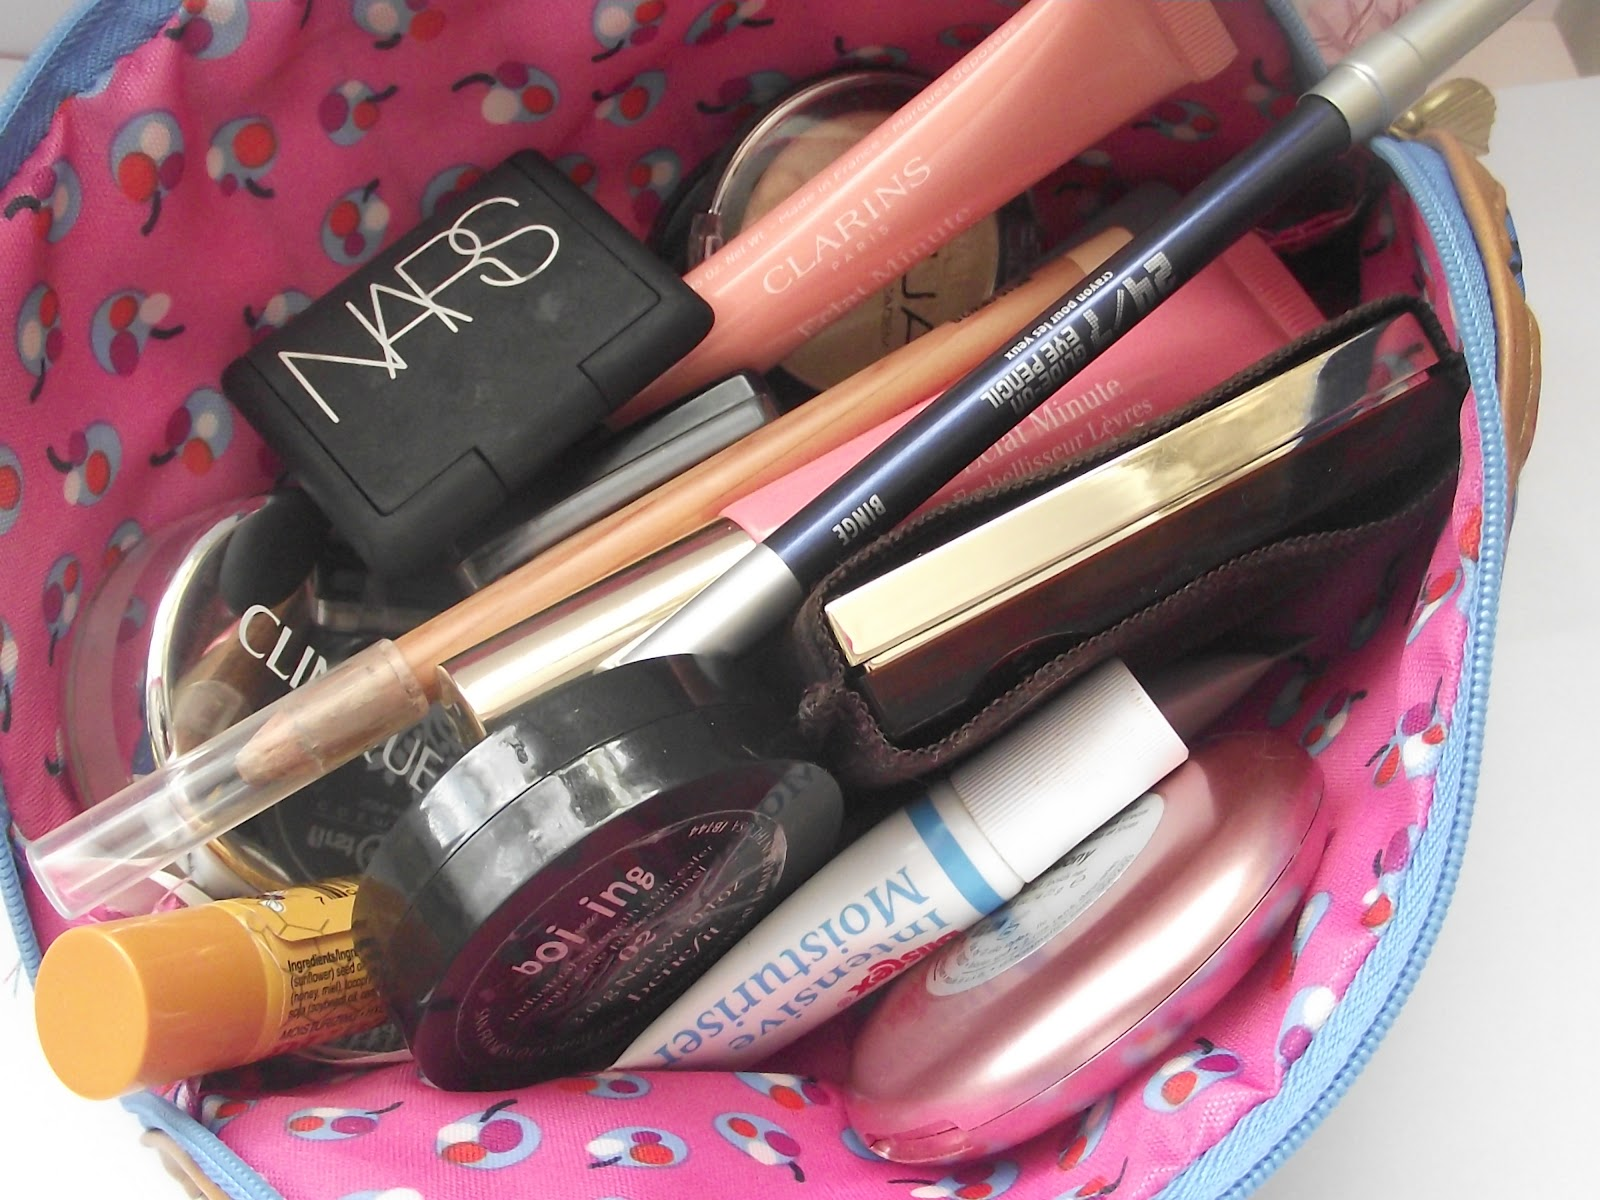 mac makeup photography tumblr. gallery for \u003e makeup products wallpaper mac photography tumblr